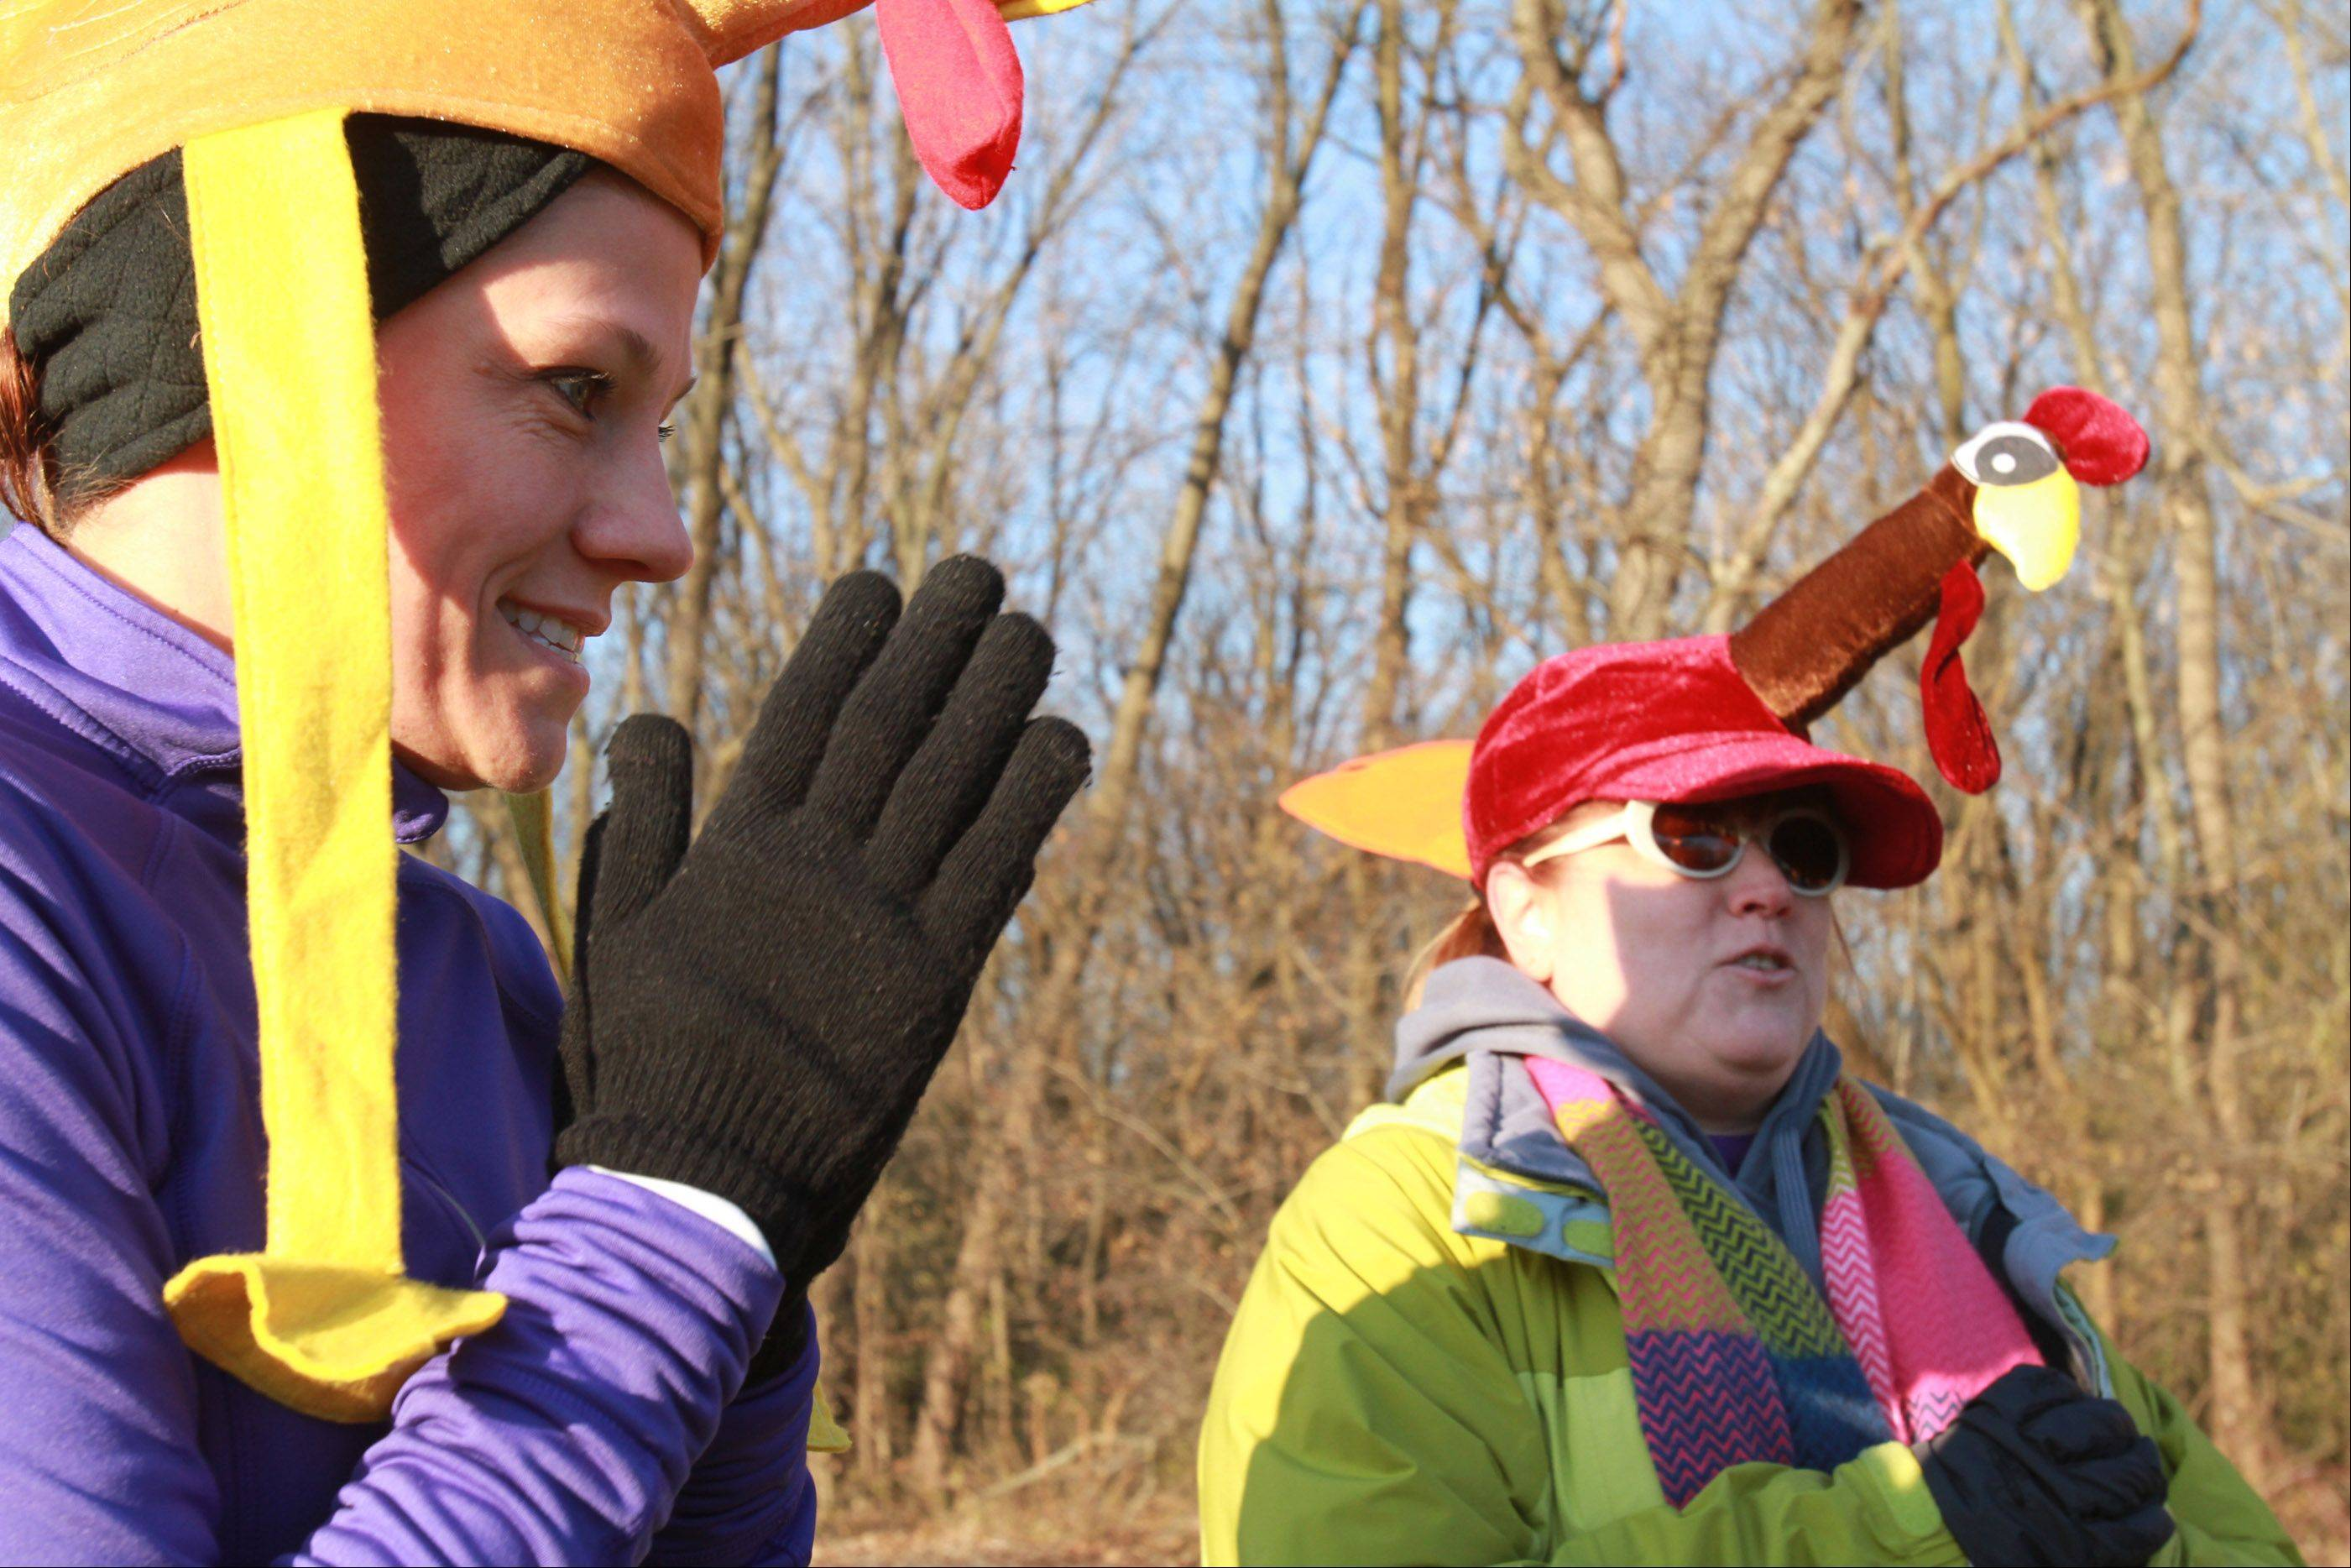 Shelly Lamb of Roselle and Tania Sorrentino of Wheeling try to say warm before the start of the Schaumburg Half Marathon and 5K Turkey Trot on Saturday which runs through Busse Woods Forest Preserve near Schaumburg.